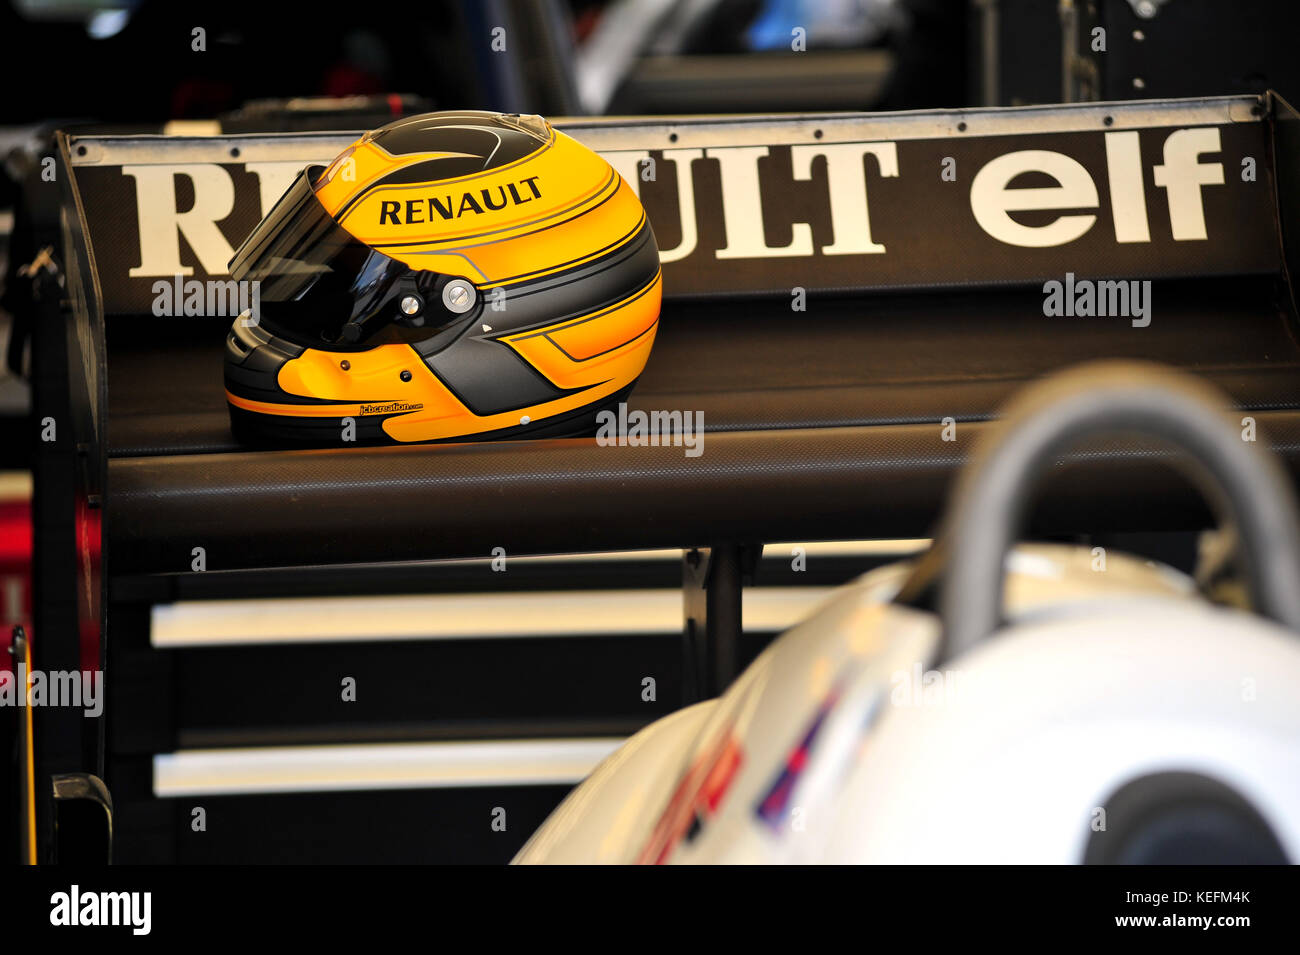 A Yellow racing helmet on the rear wing of an F1 car - Stock Image